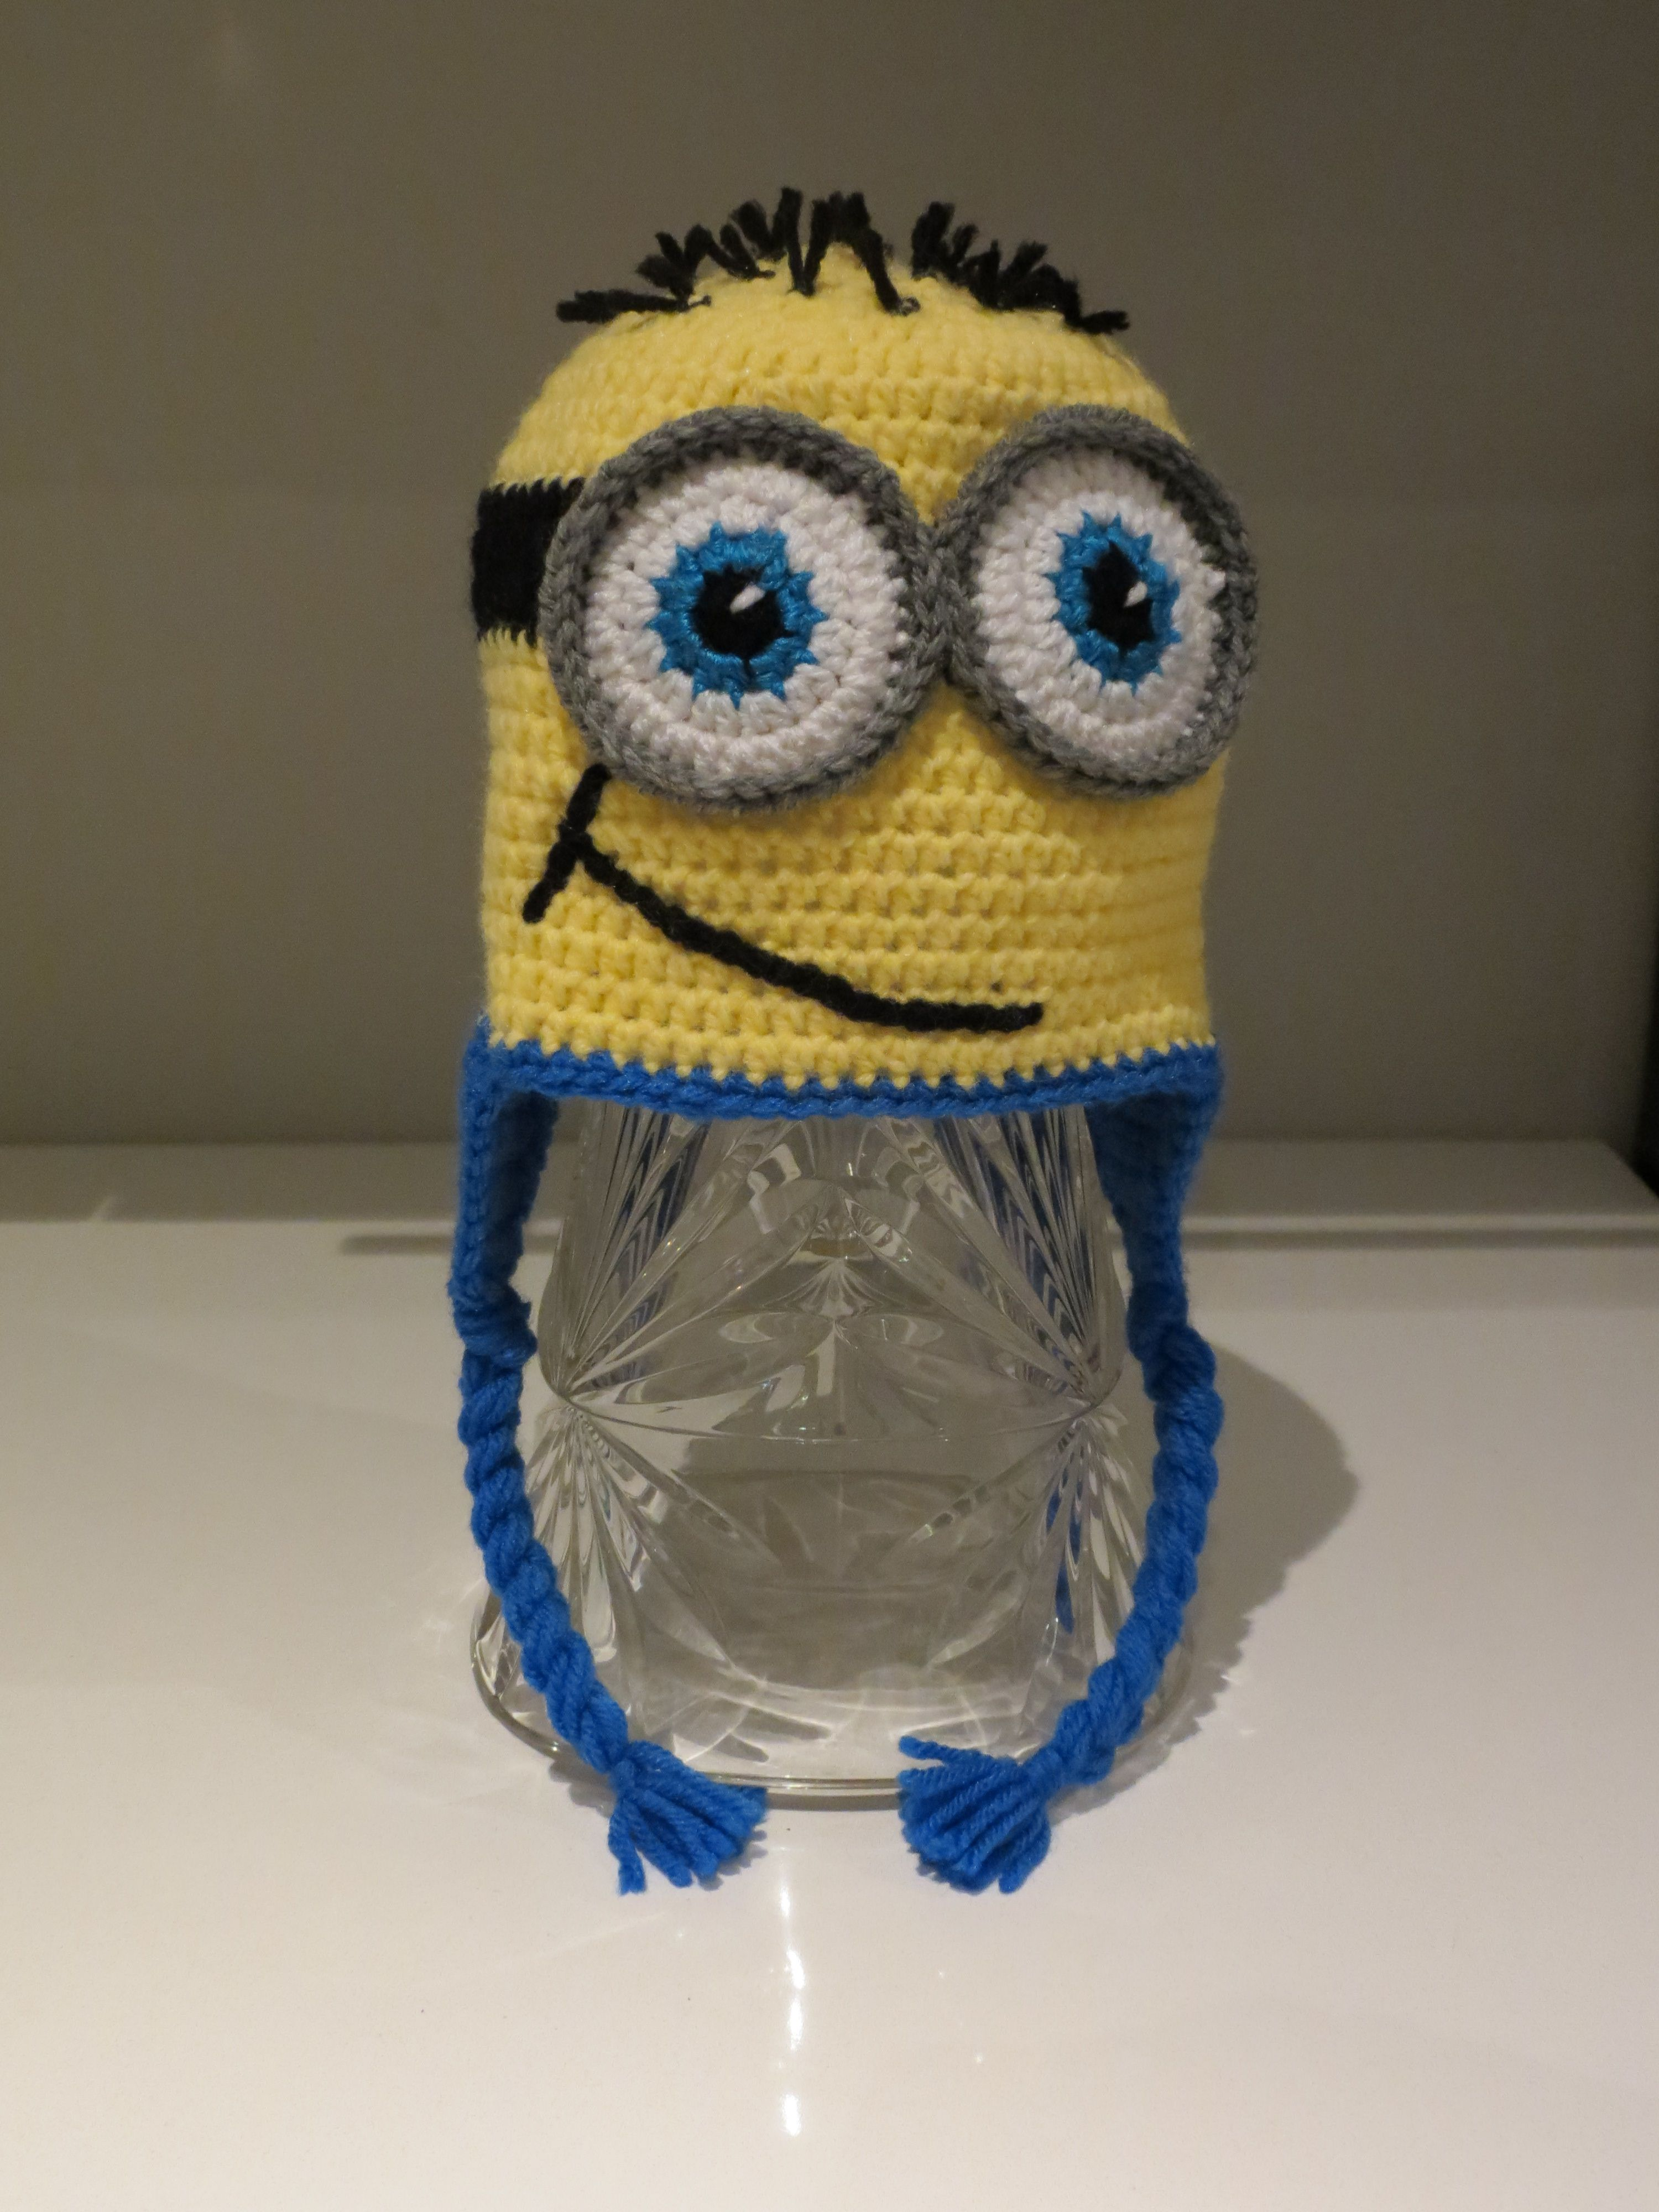 Minion crochet hat pattern from repeat crafter me chapeaux minion crochet hat pattern from repeat crafter me bankloansurffo Image collections